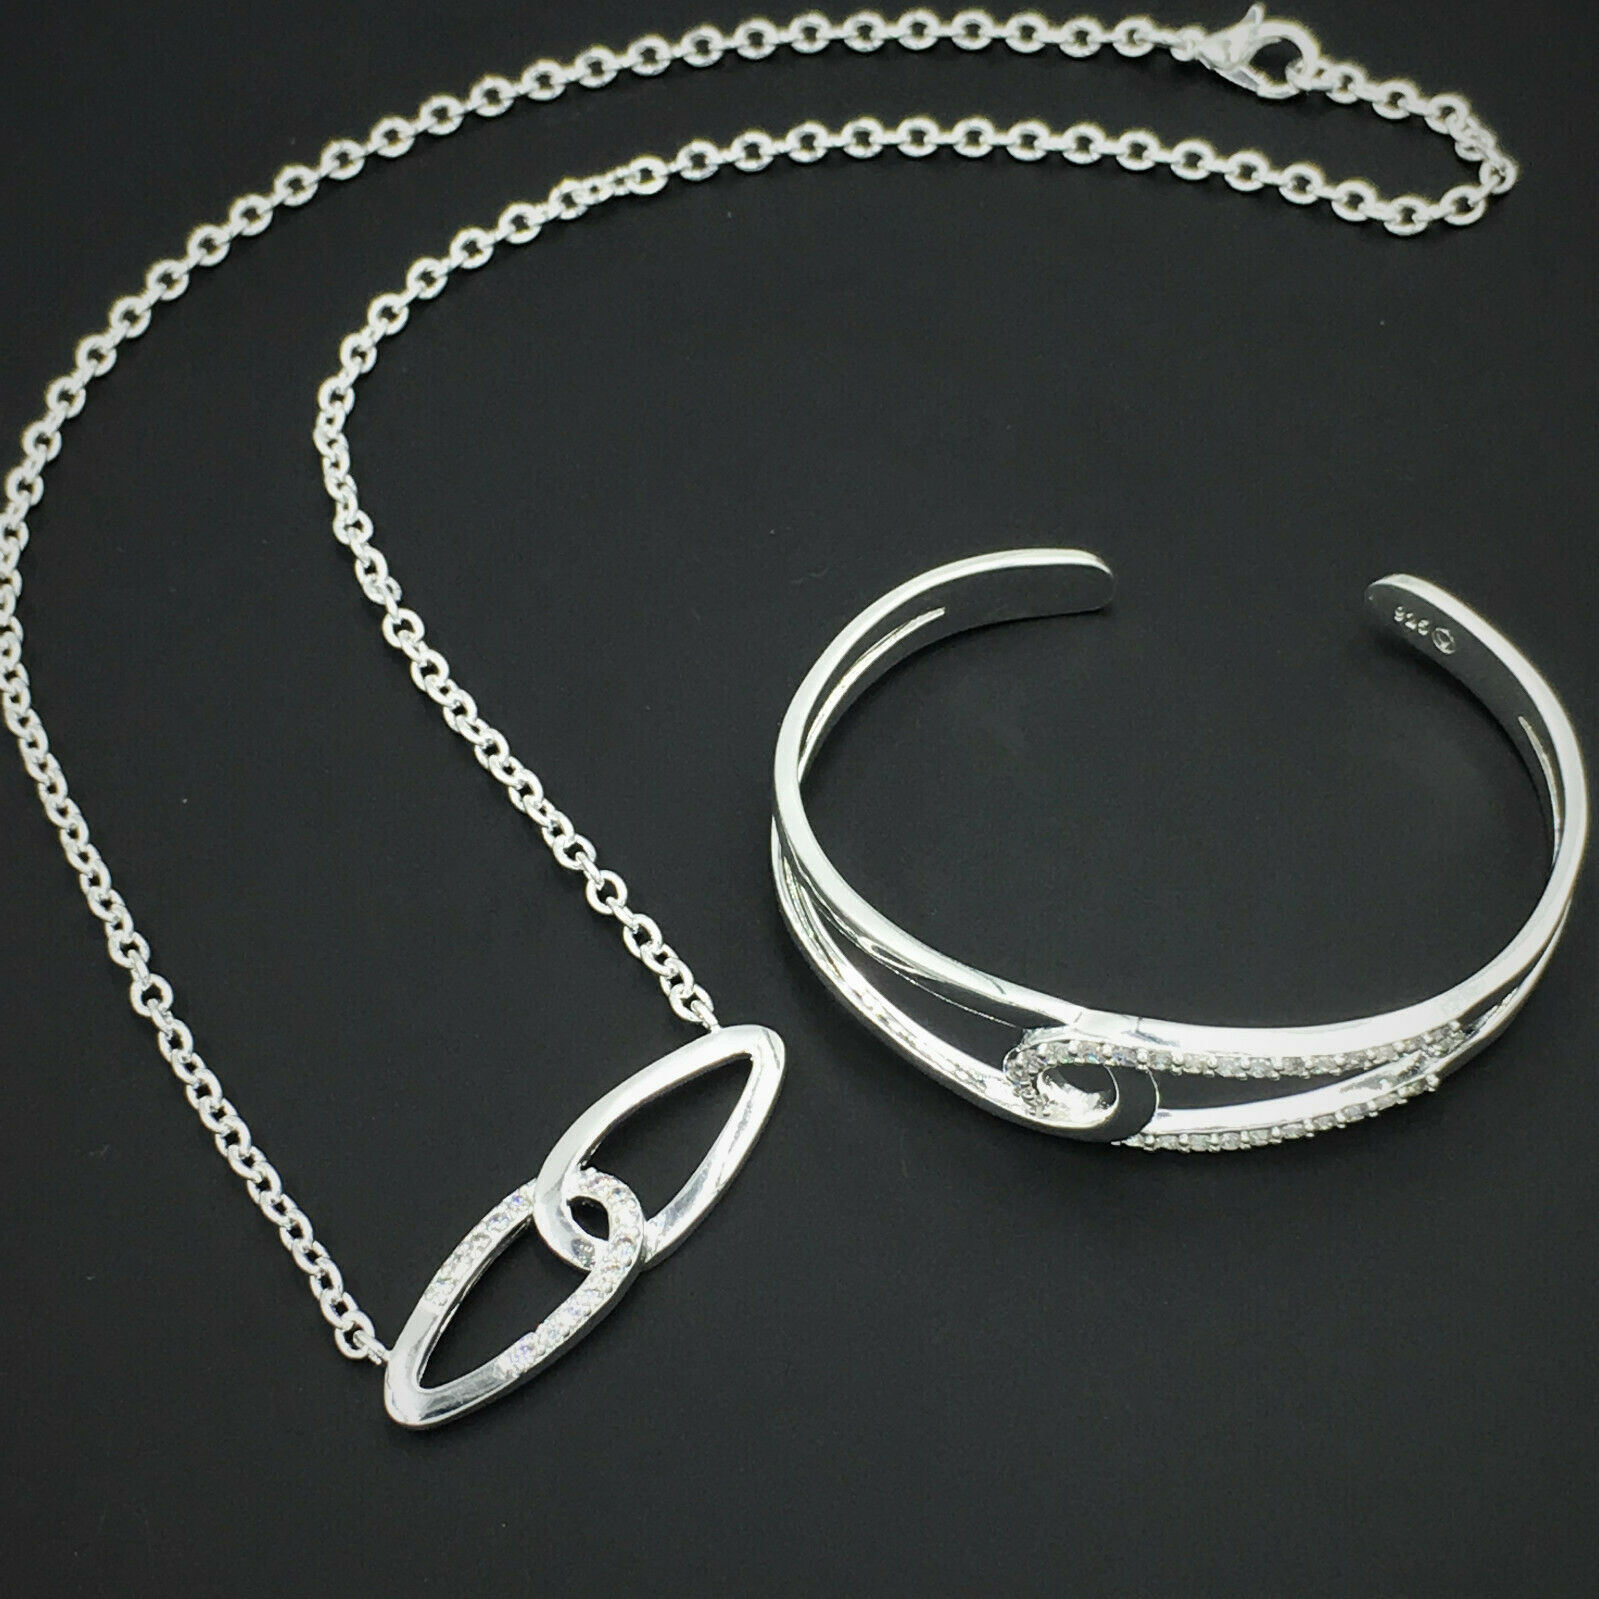 Primary image for Double Link Pendant Necklace and Bracelet Set 925 Sterling Silver NEW